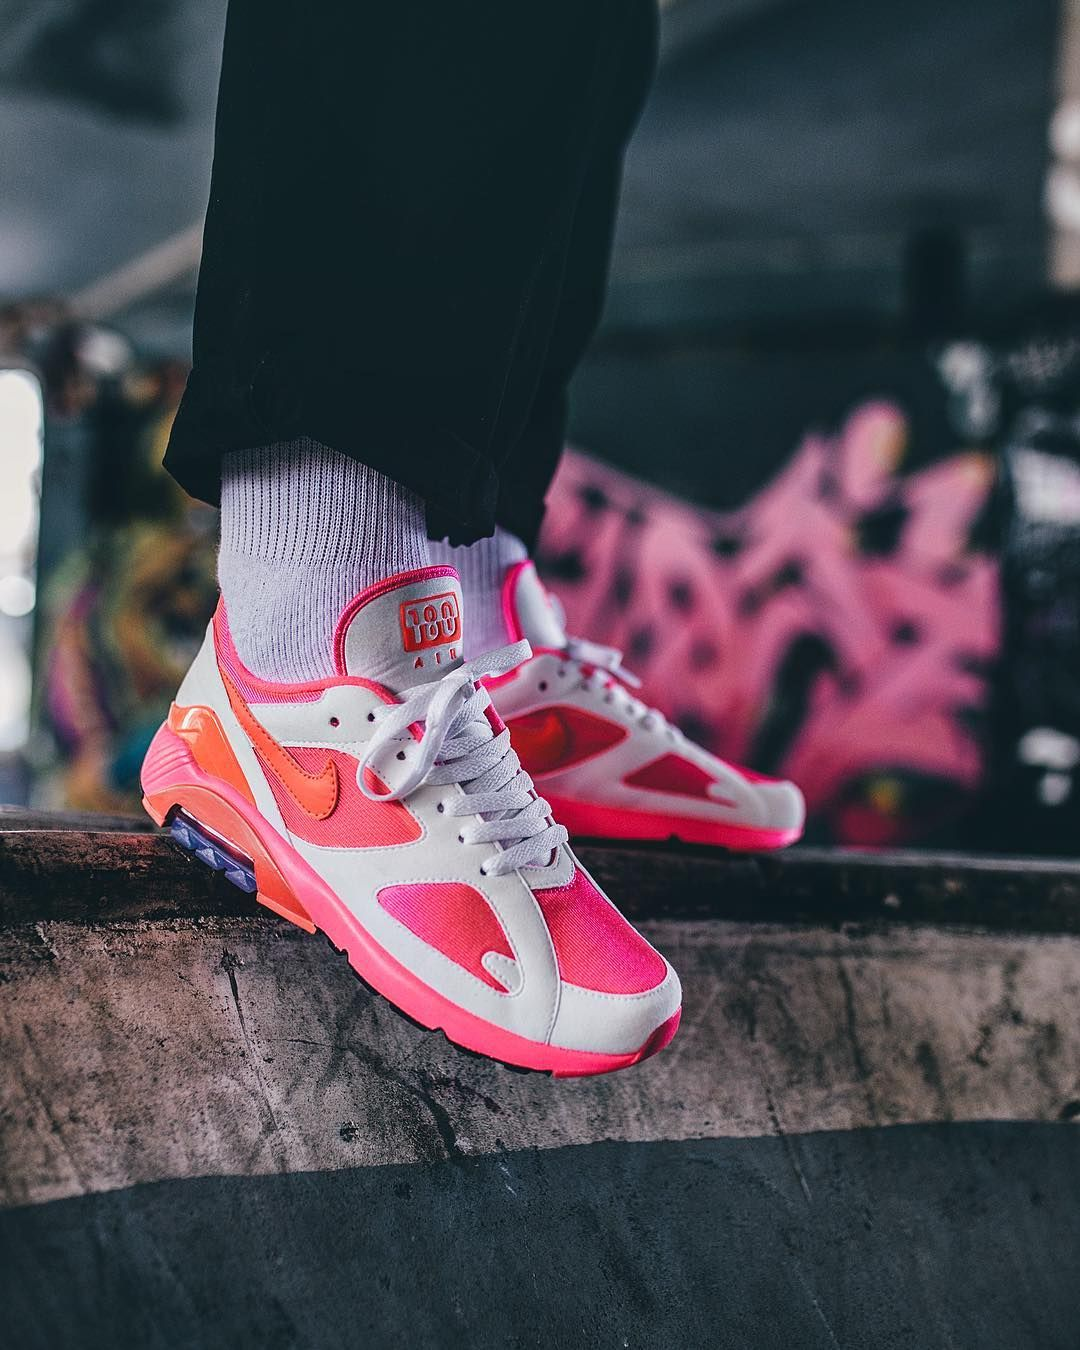 COMME des Garcons x Nike Air Max 180 CDG Pink AO4641 602